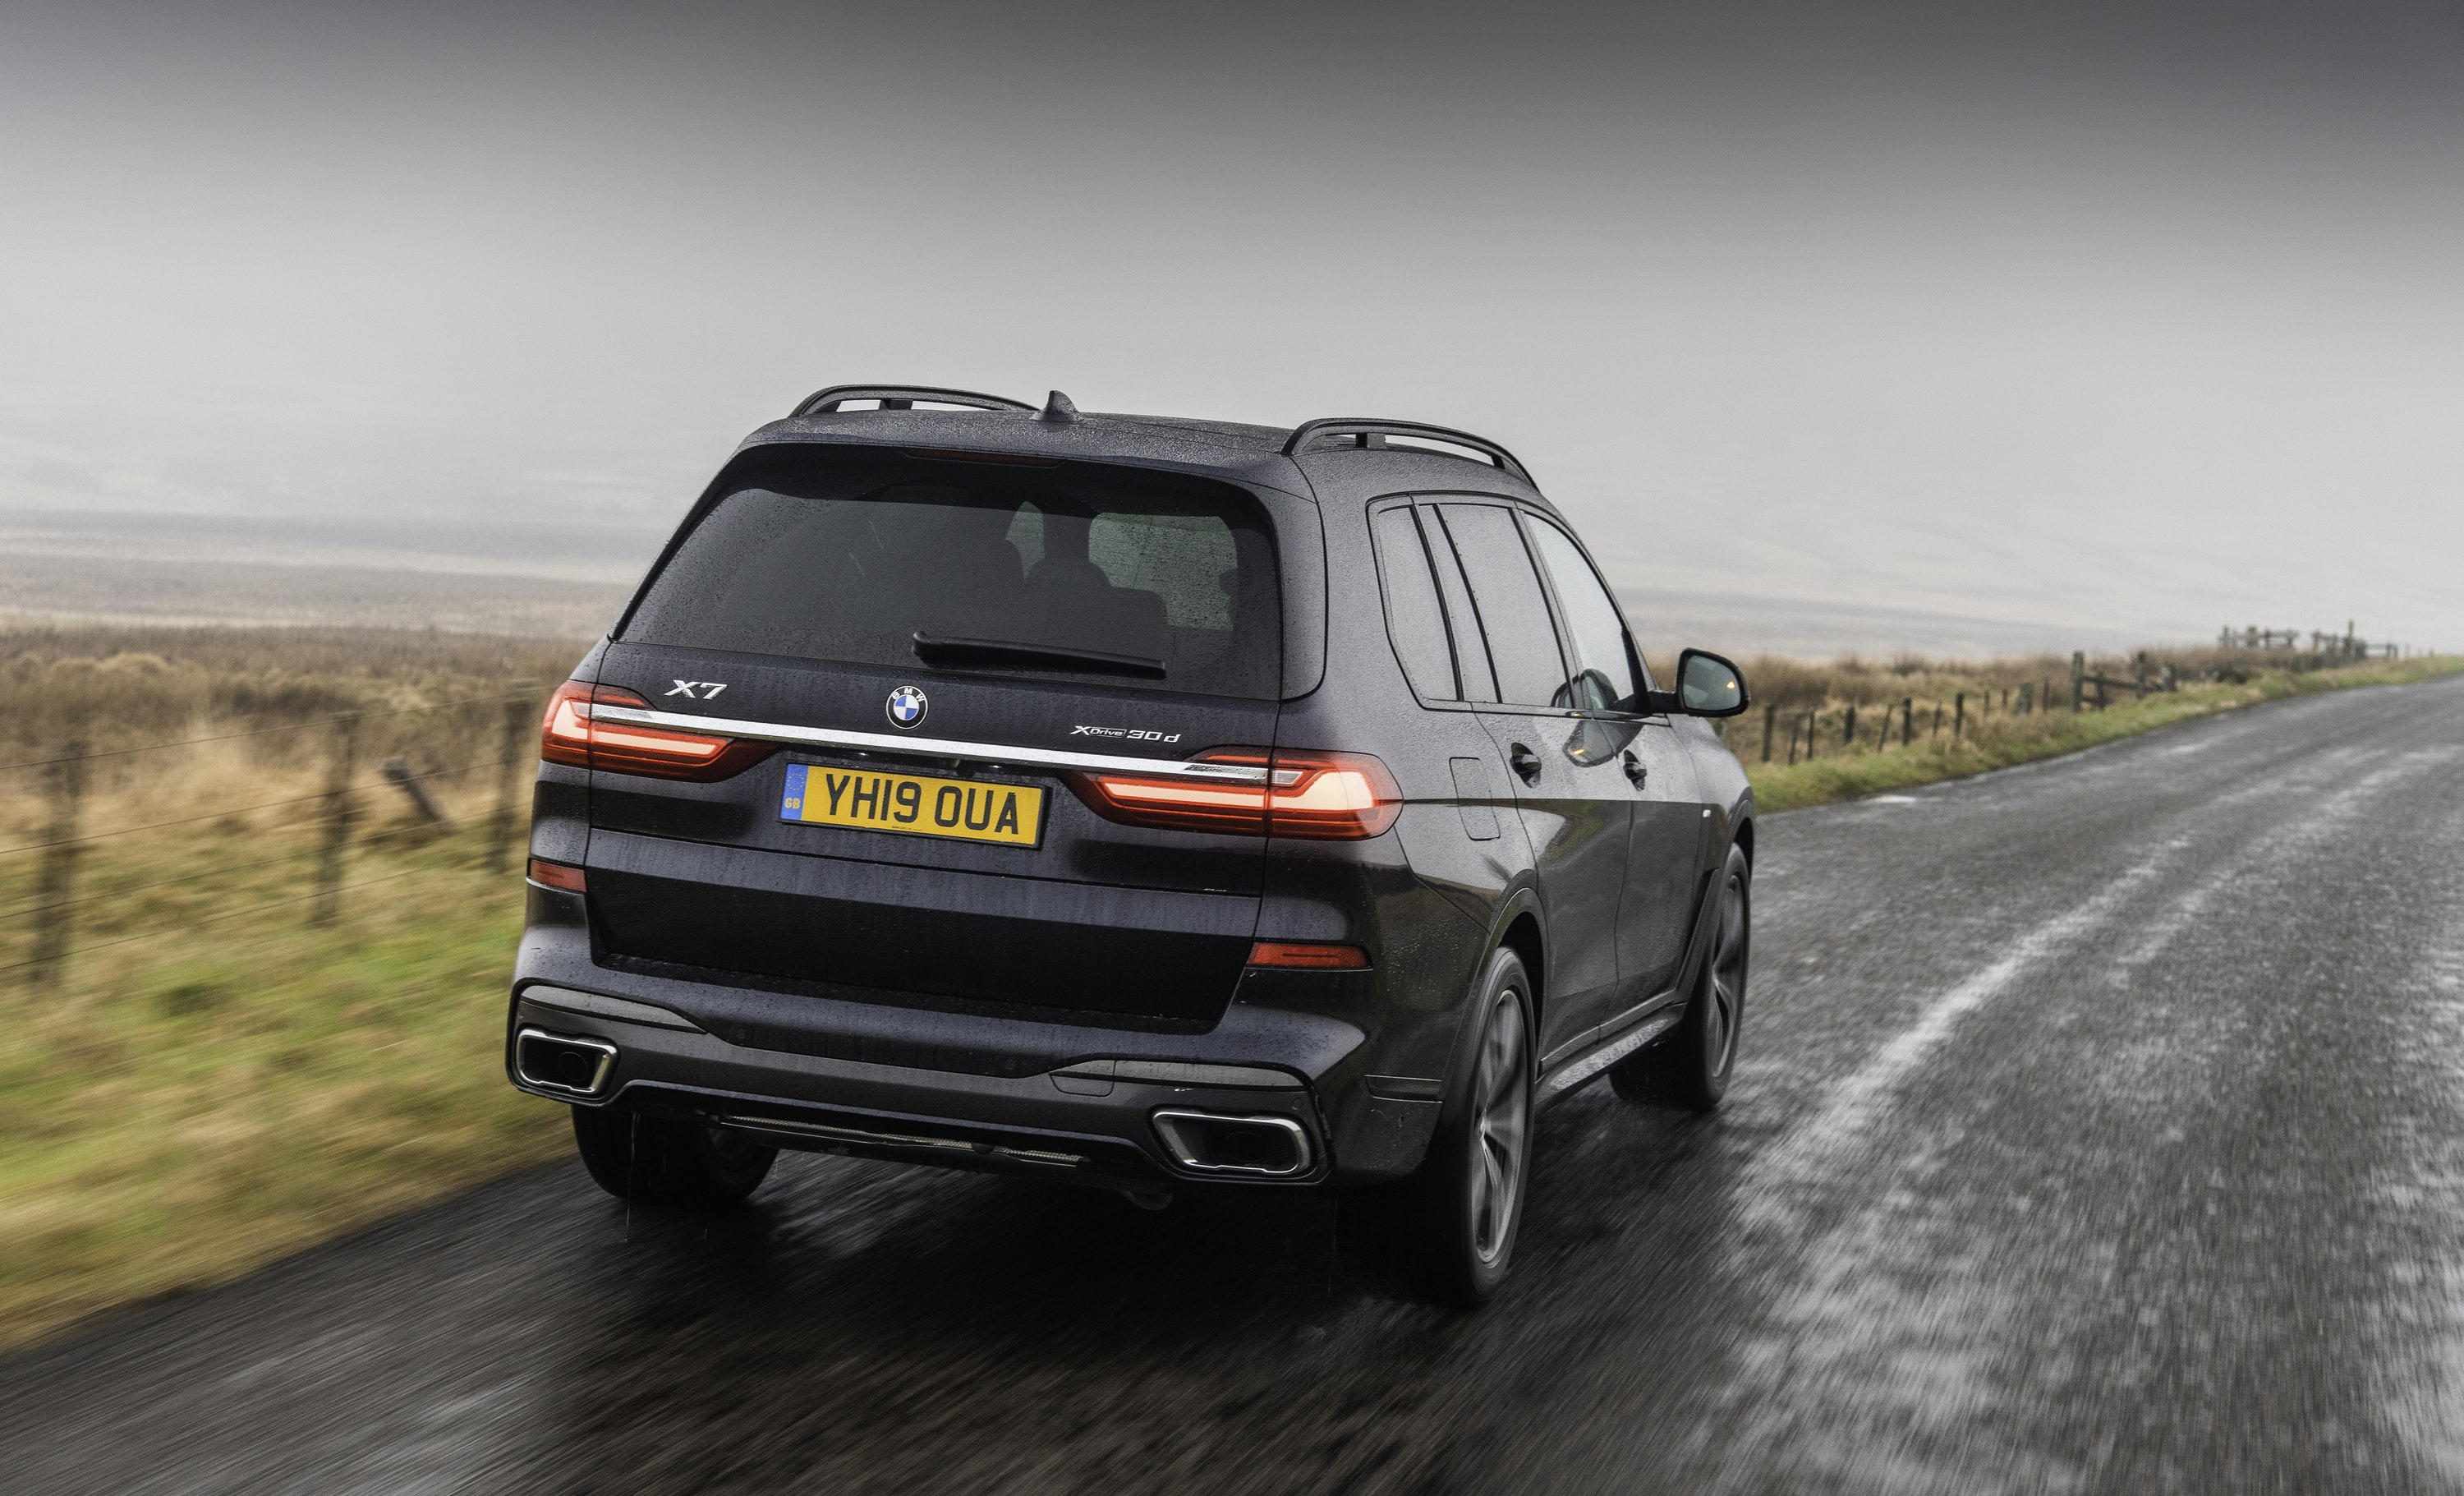 rear view of the BMW X7 driving on the road